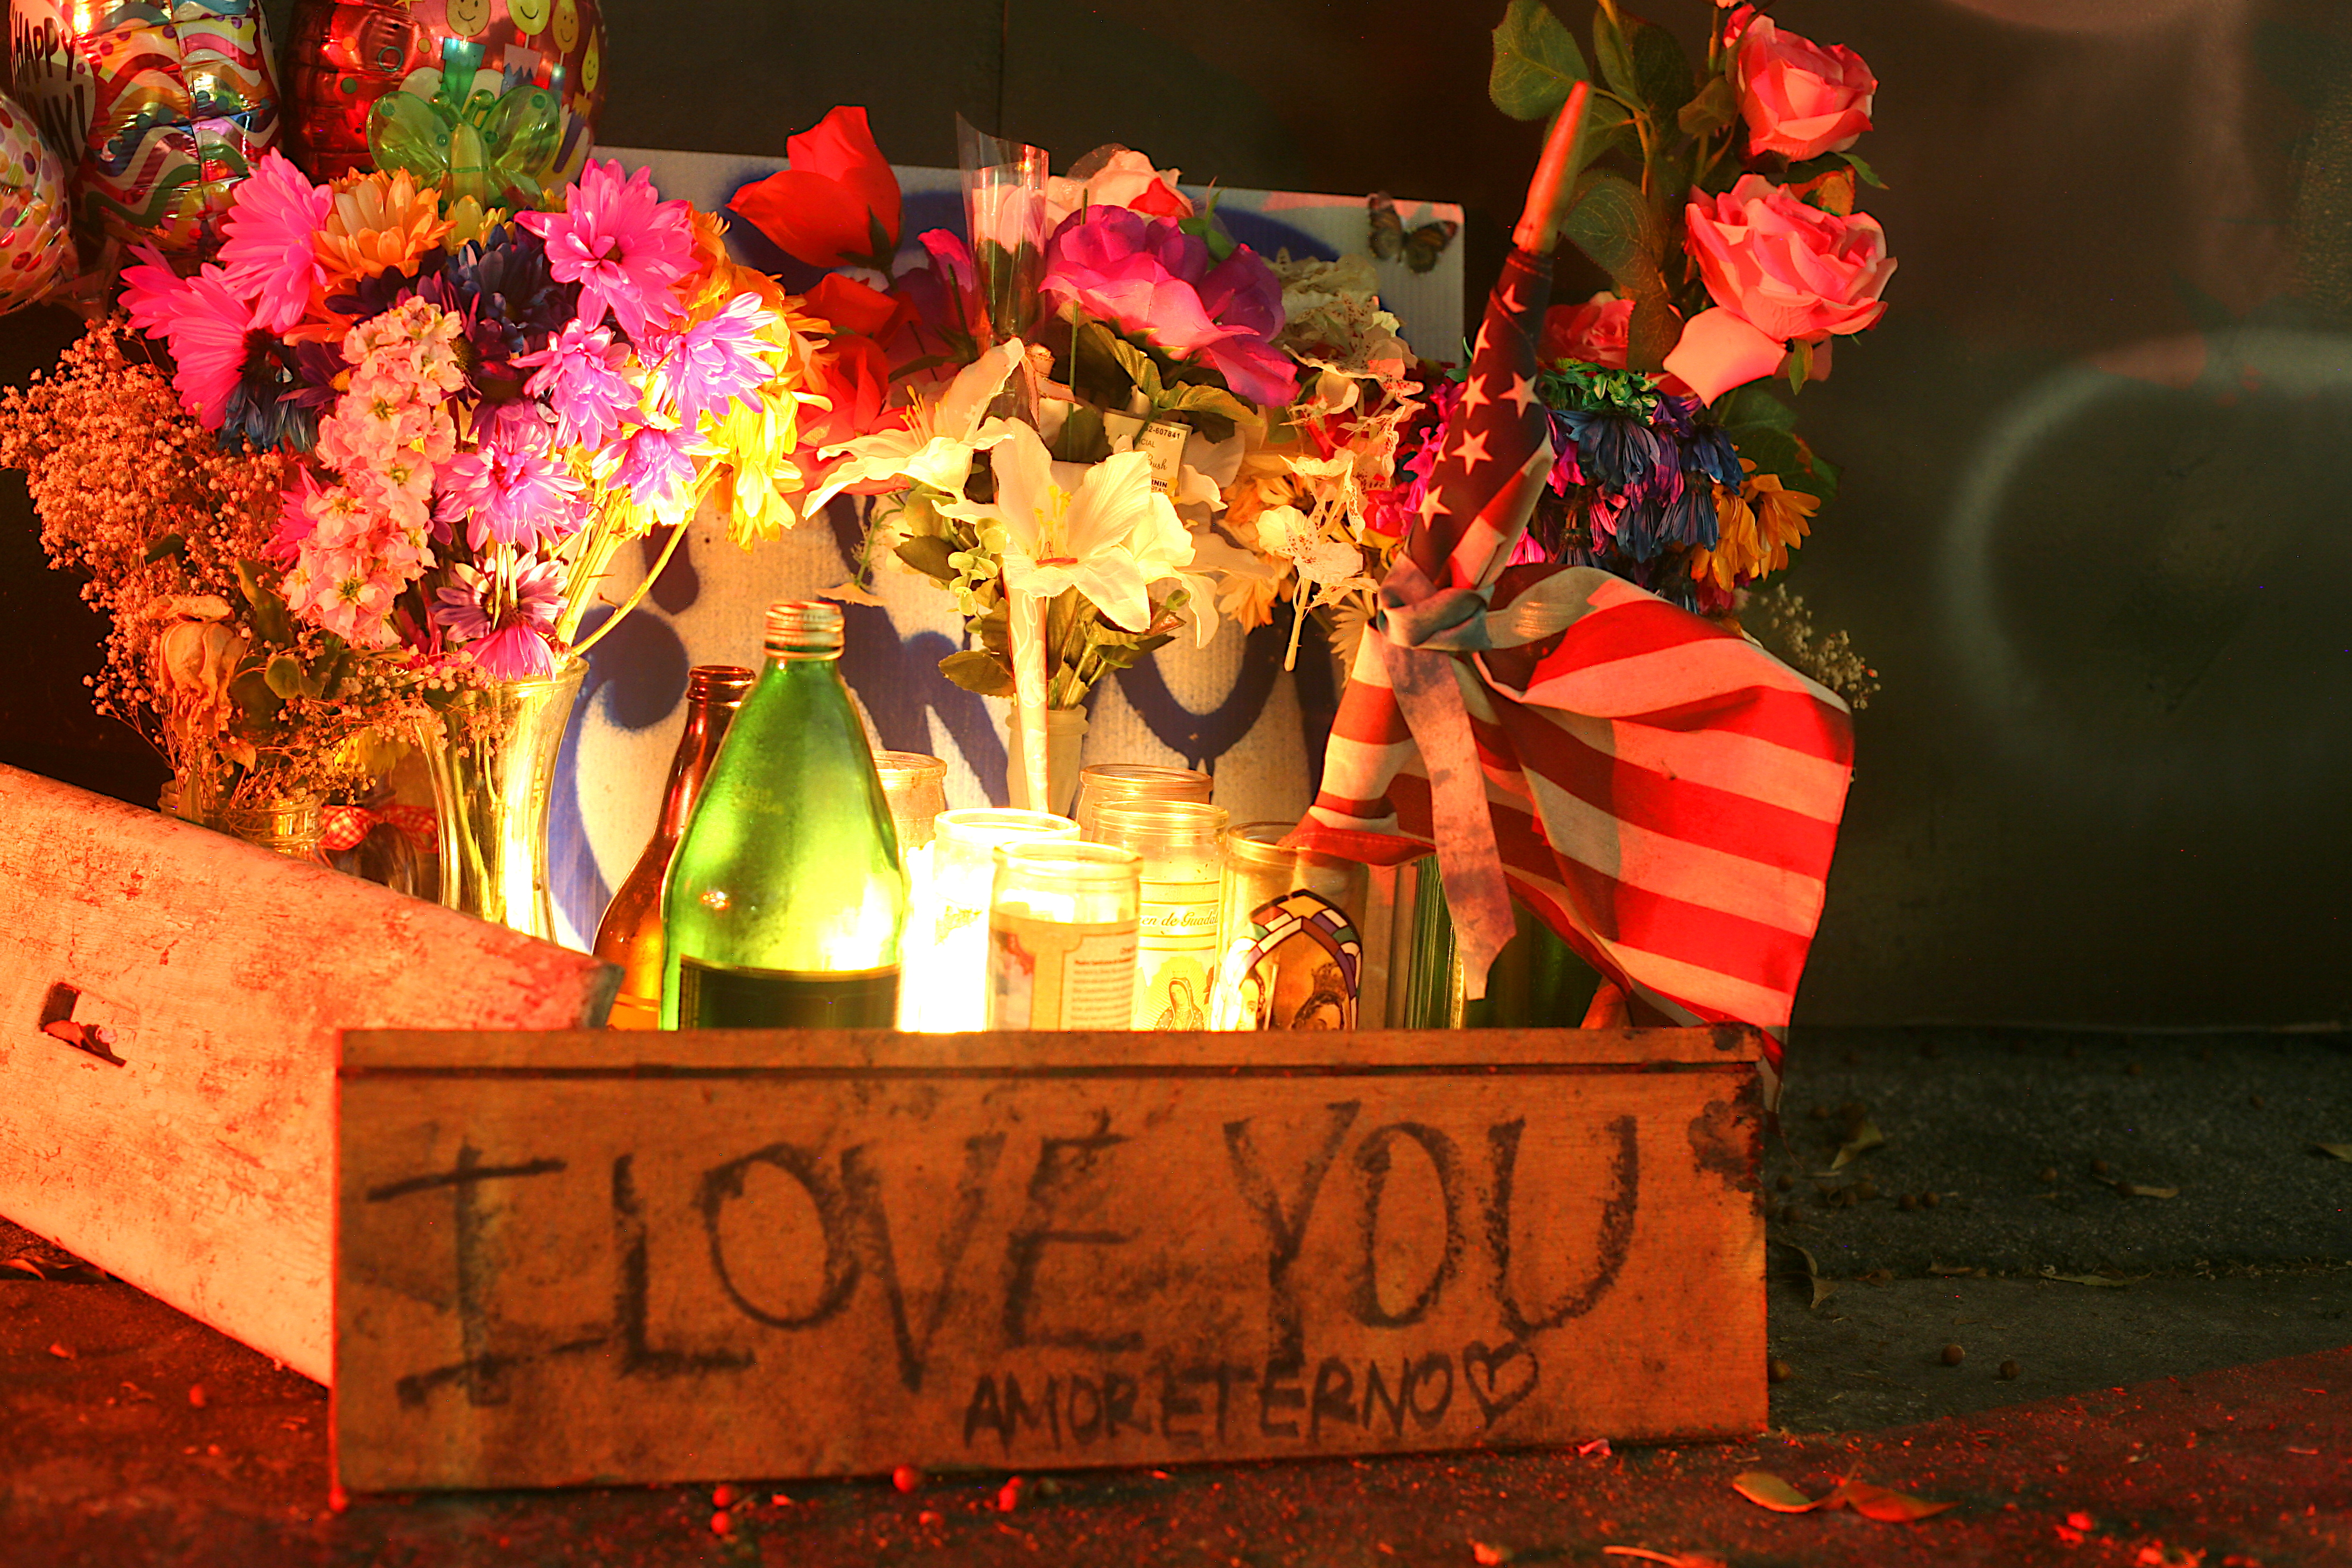 A candlelight vigil for Cary Rodriguez, 21, at Melrose and North Westmoreland avenues